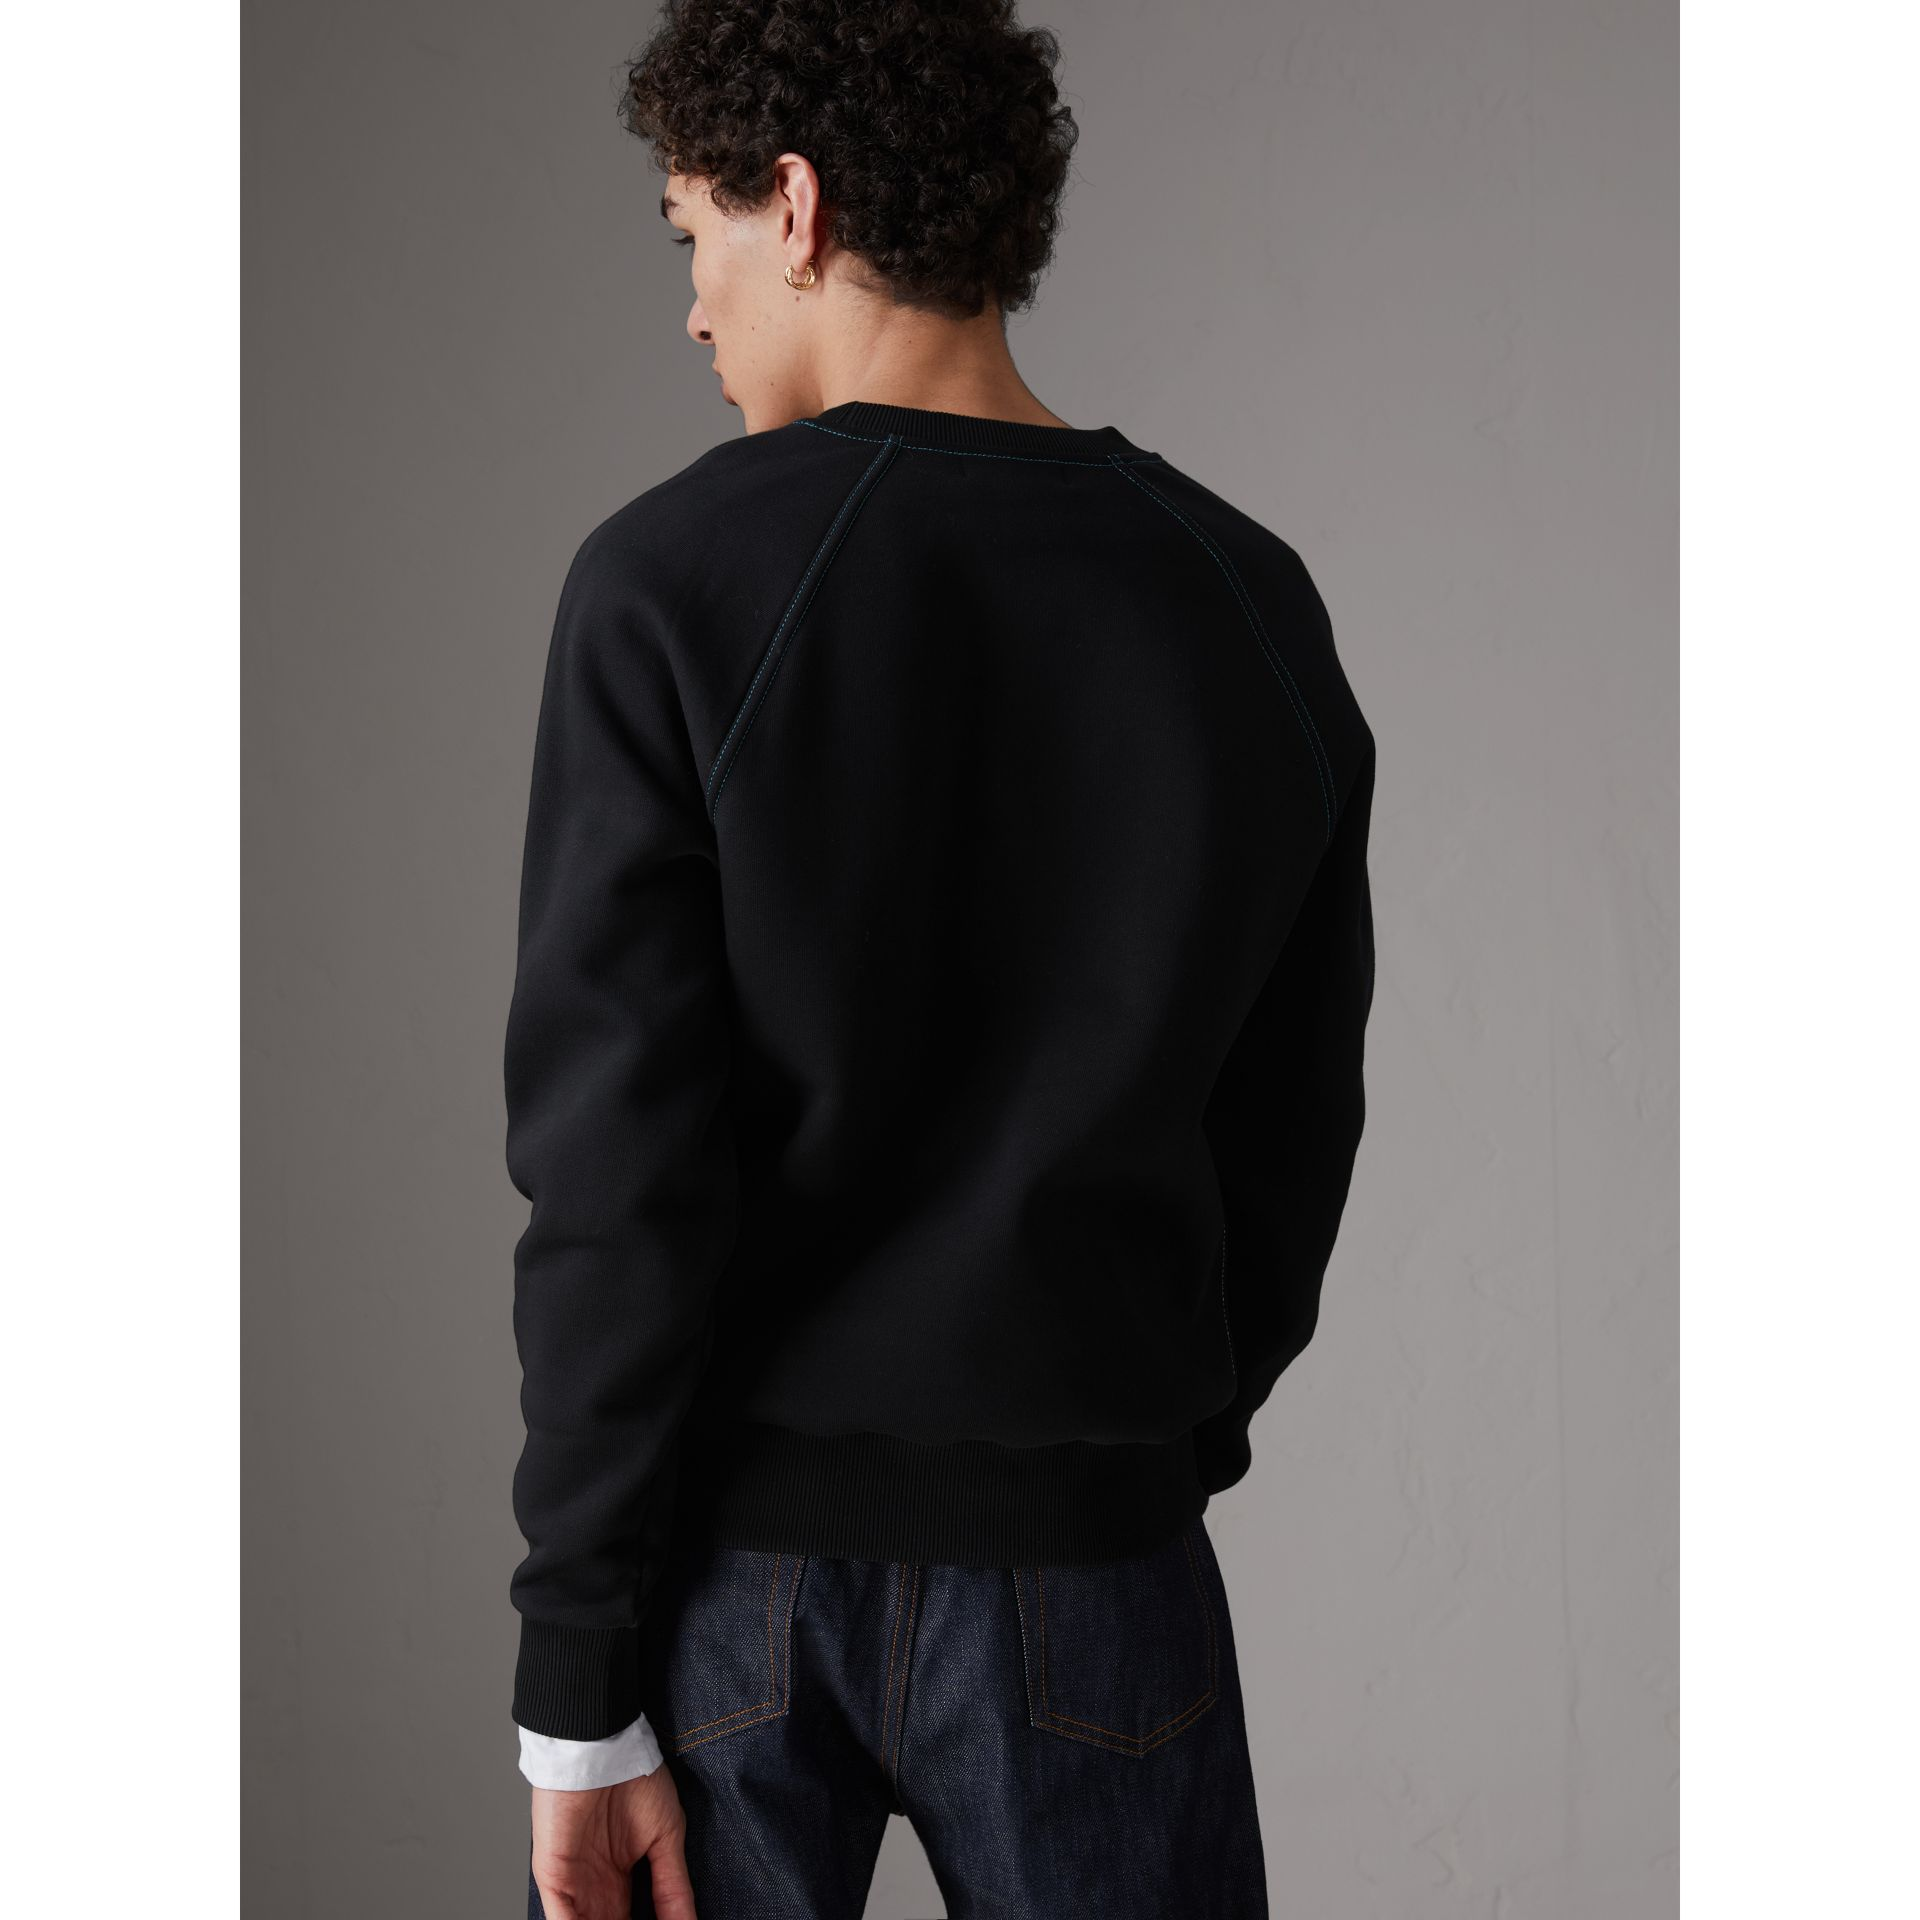 Sweat-shirt en jersey brodé (Noir) - Homme | Burberry - photo de la galerie 2